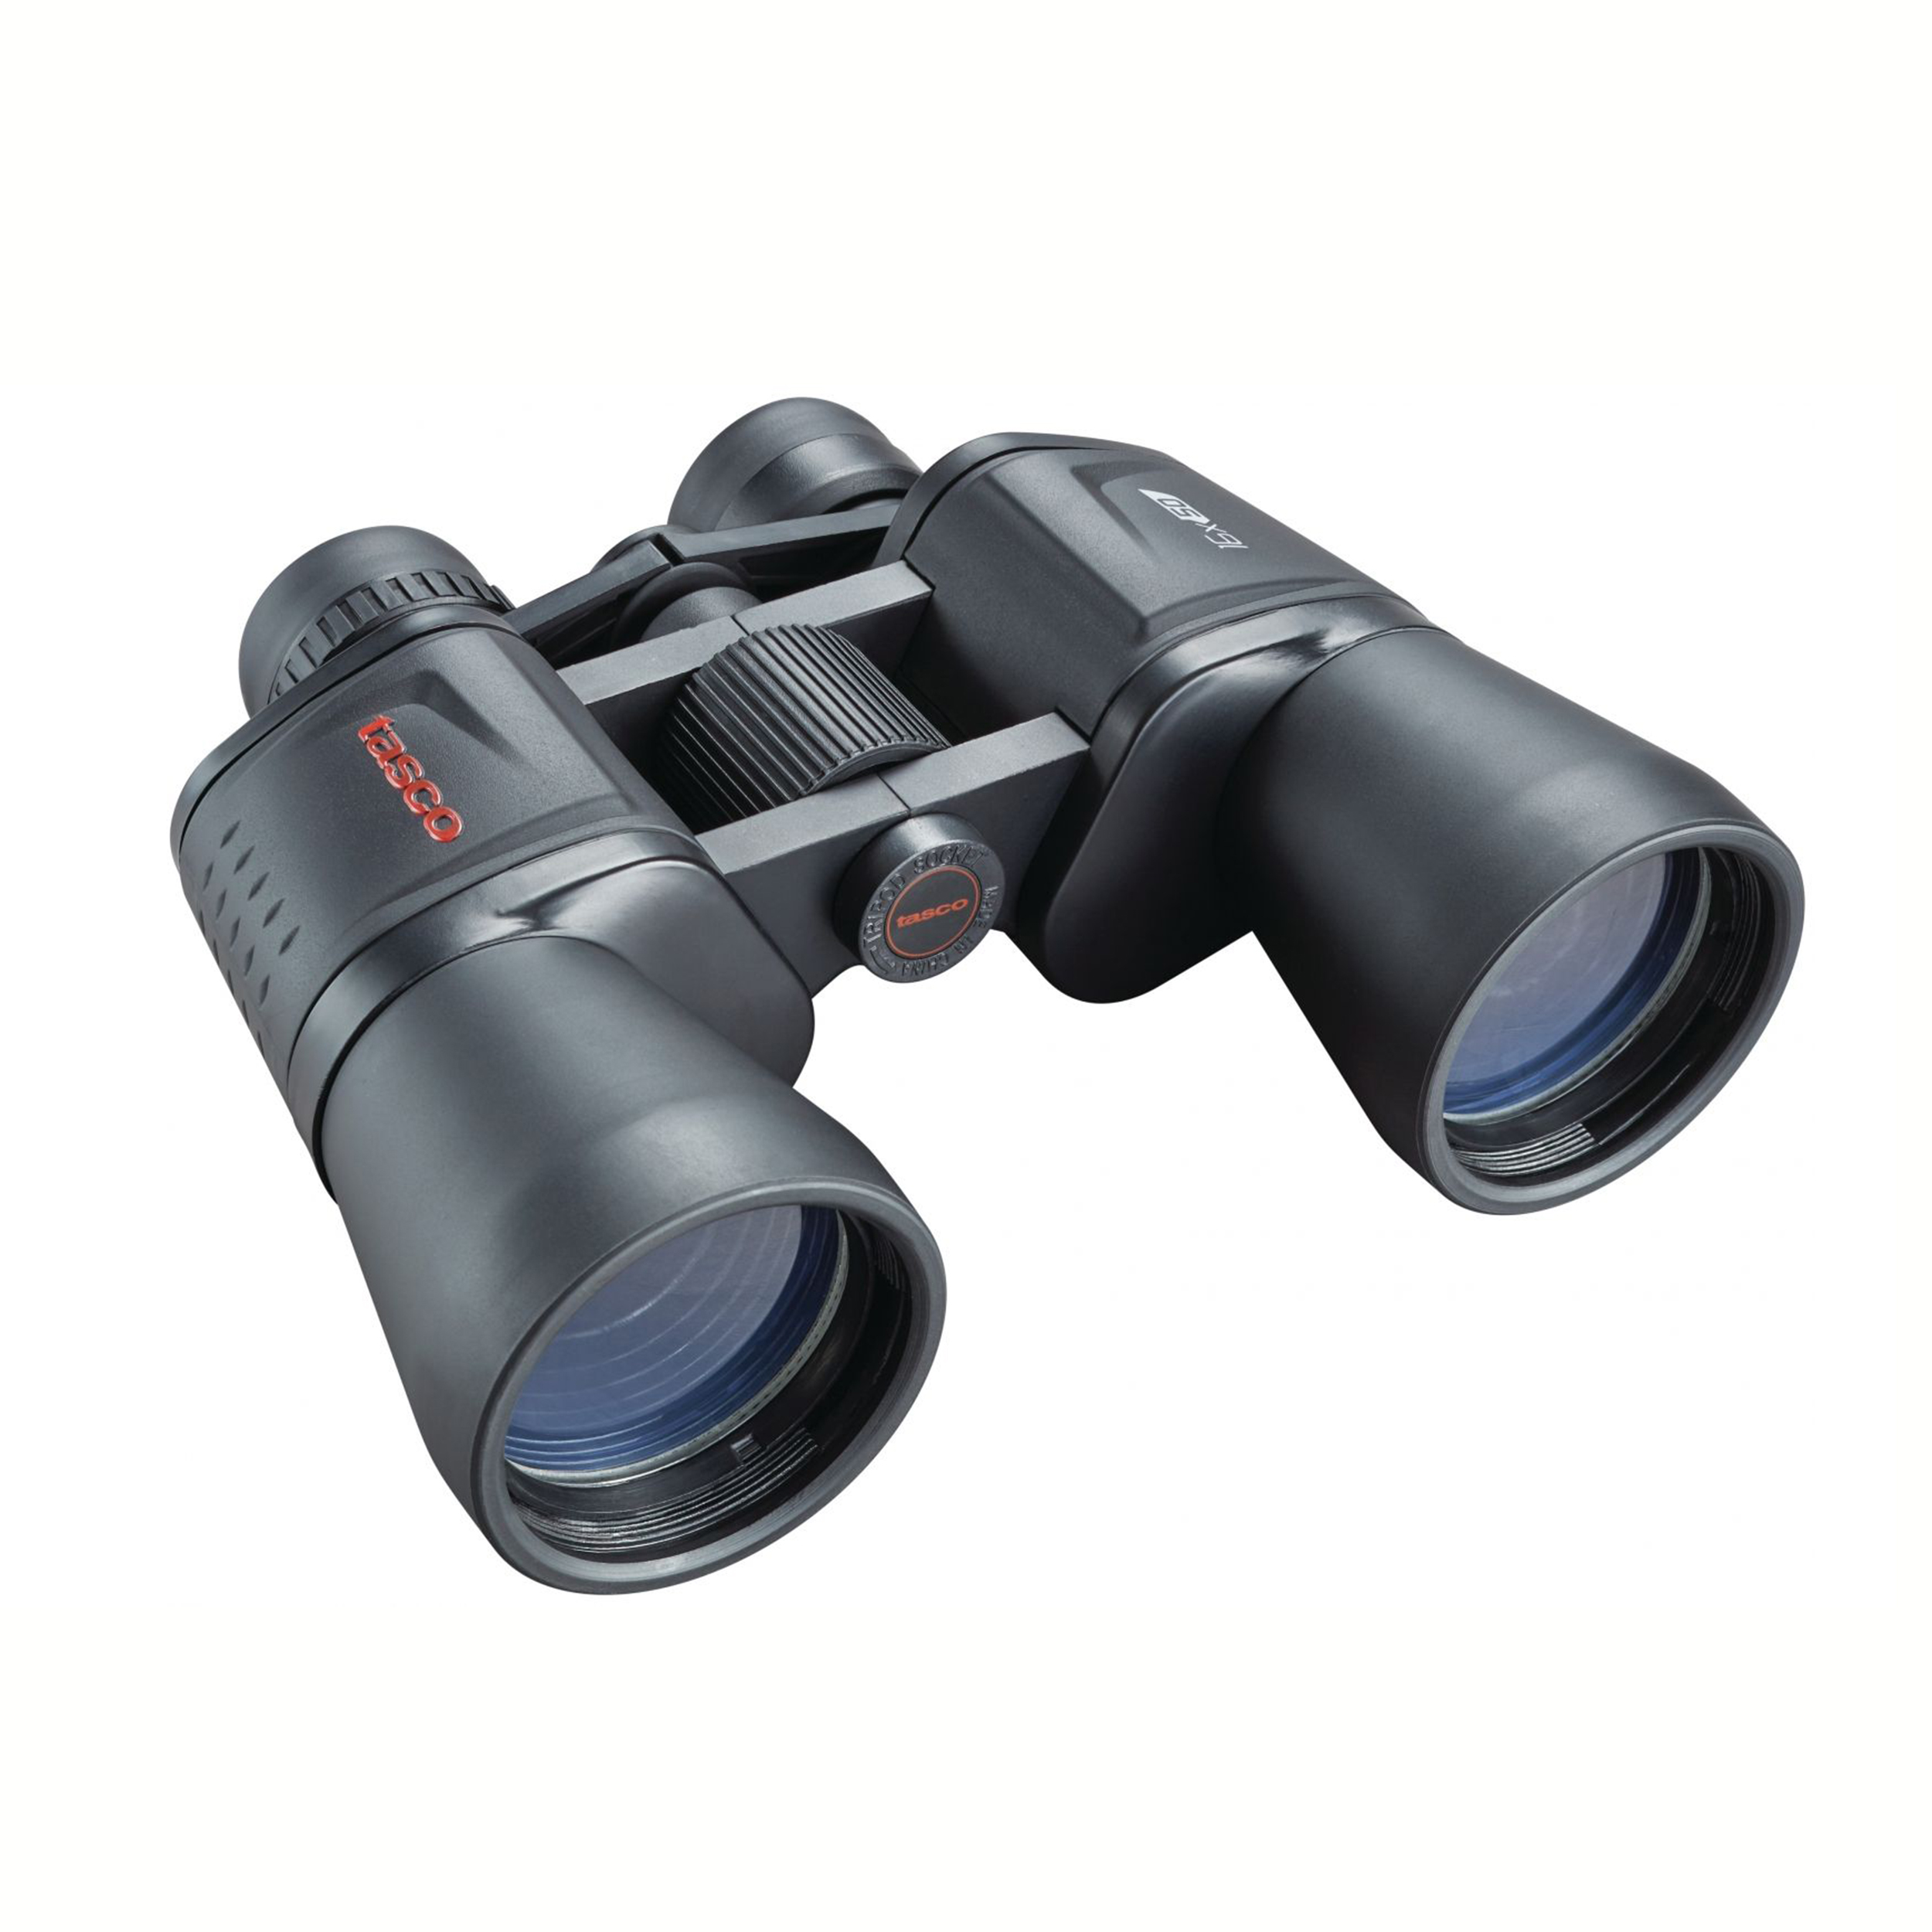 Tasco 170165 Essentials 16 X 50mm Porro Prism Binoculars by Tasco